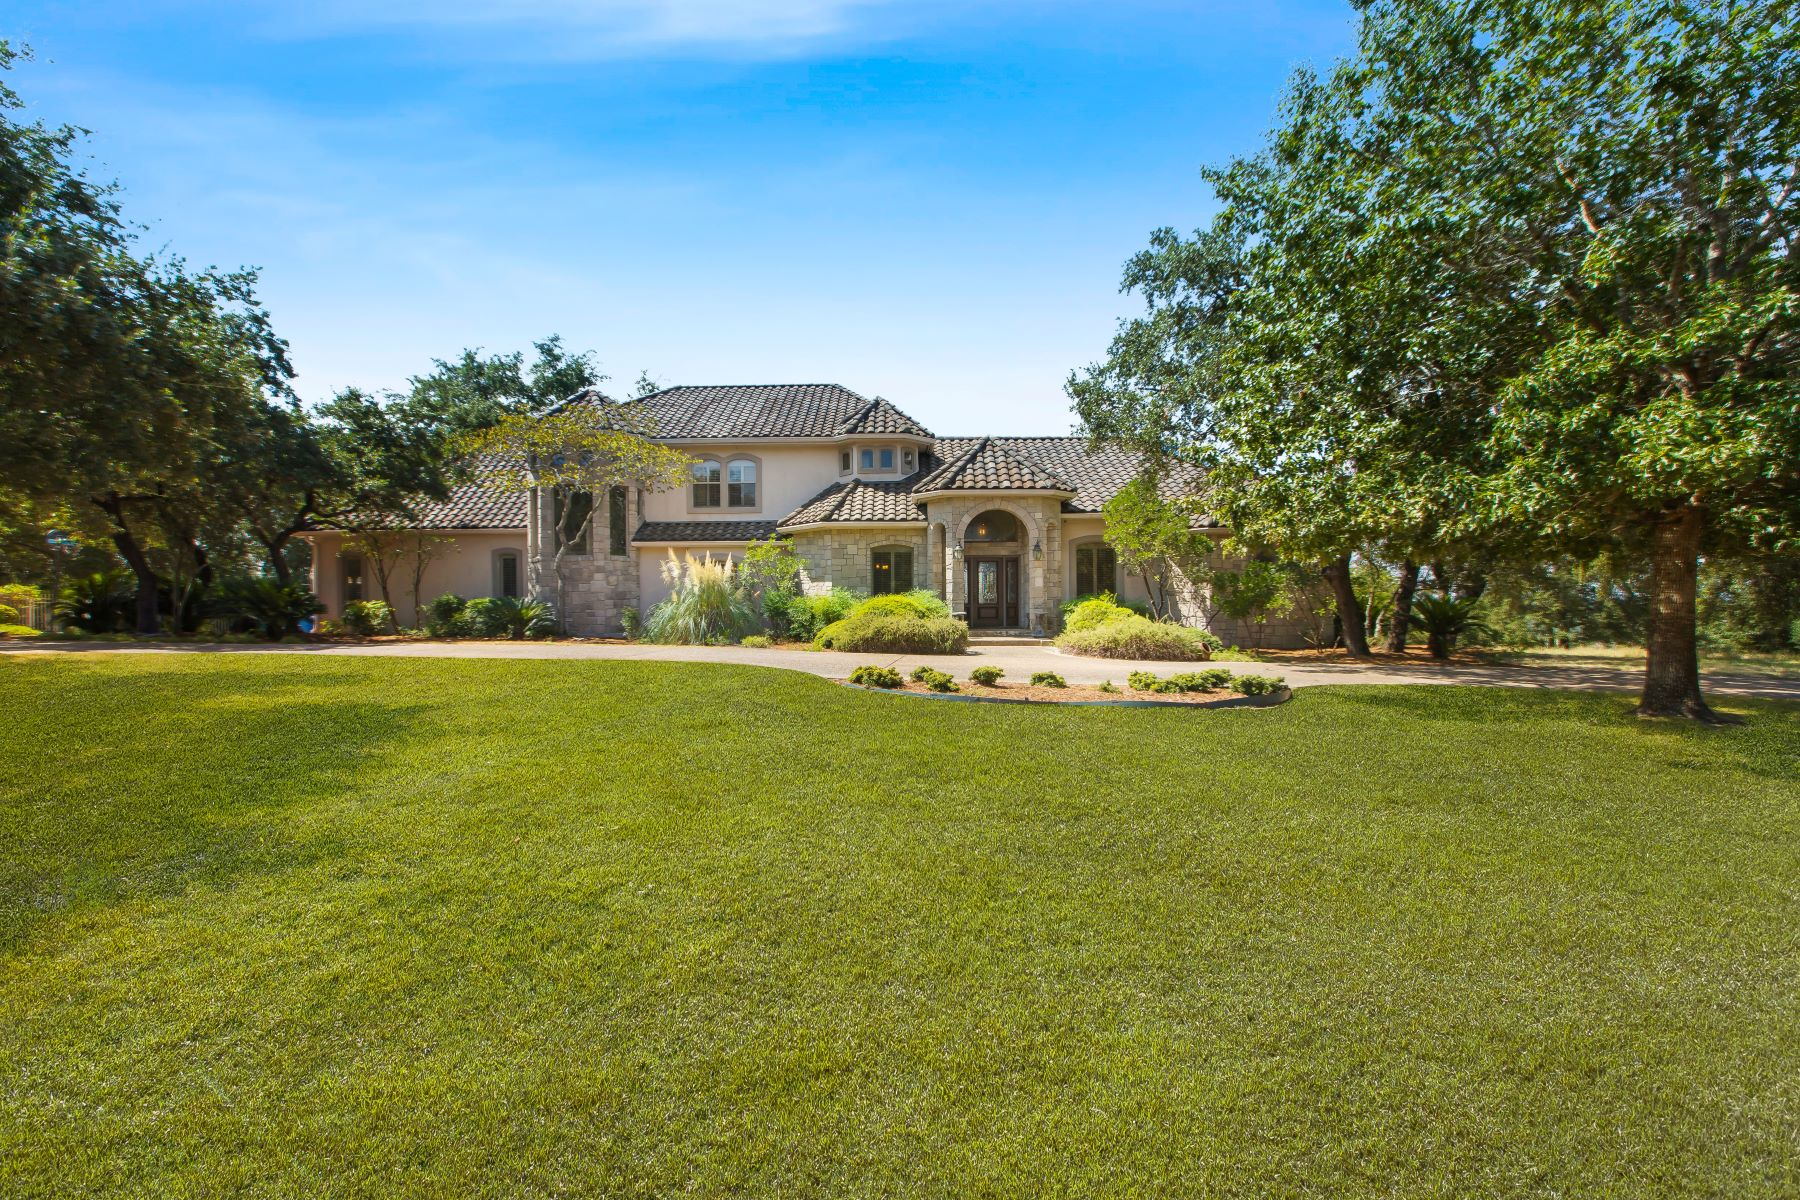 Single Family Homes for Sale at Superior Estate Nestled within Fair Oaks Ranch 8306 Paddock Lane Fair Oaks Ranch, Texas 78015 United States